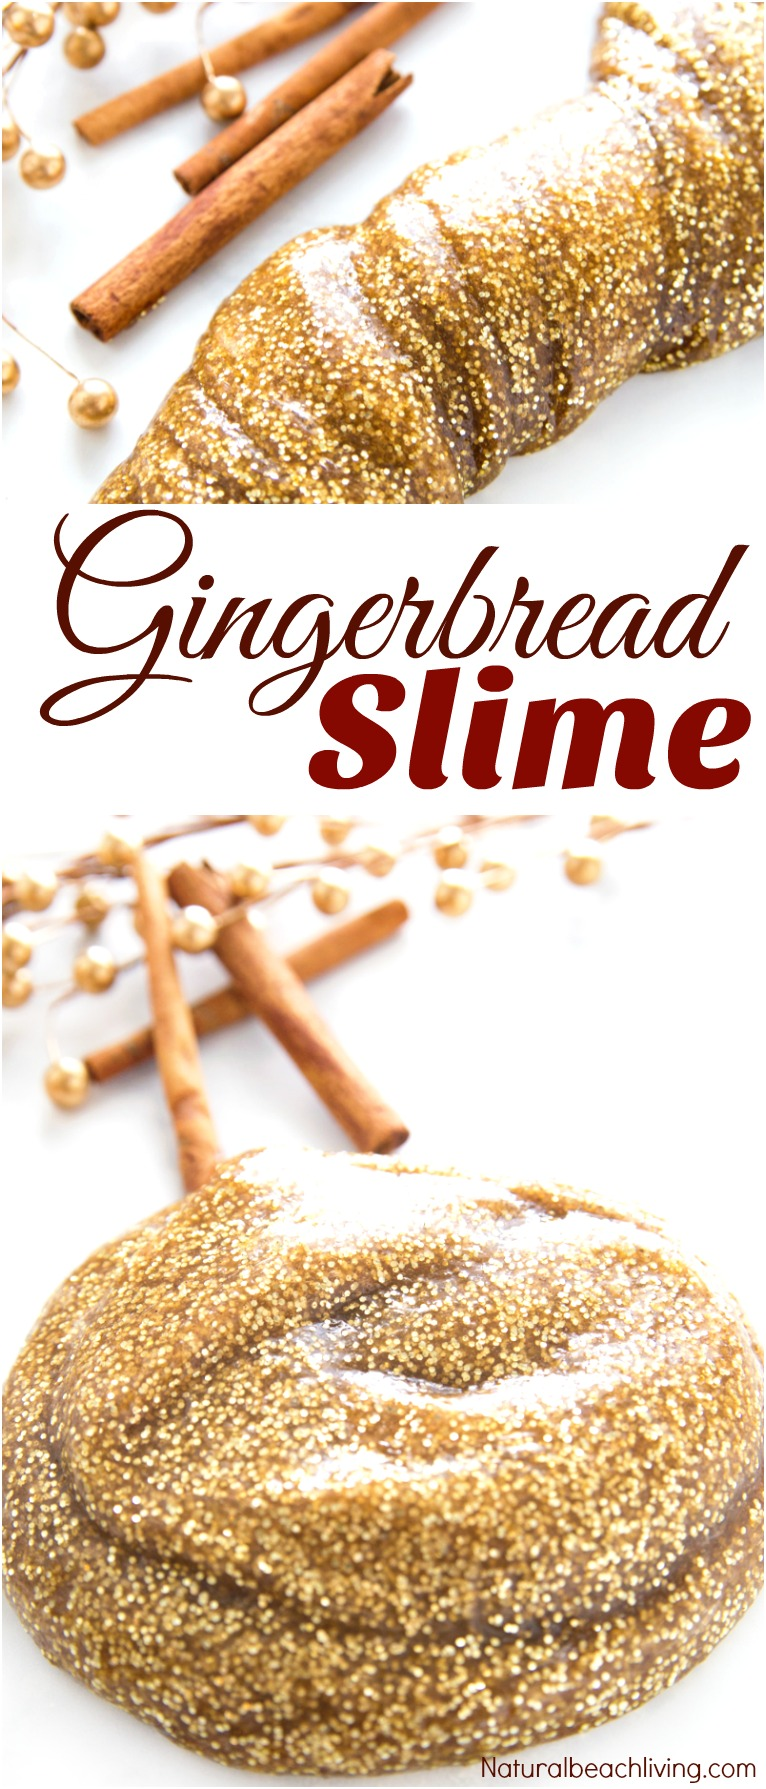 25+ Clear Slime Recipe Ideas, including how to make clear slime and slime videos, you can learn about slime science, find clear slime recipe without borax, clear slime recipe with contact solution and so many FUN homemade slime recipes like the #1 Gingerbread Slime